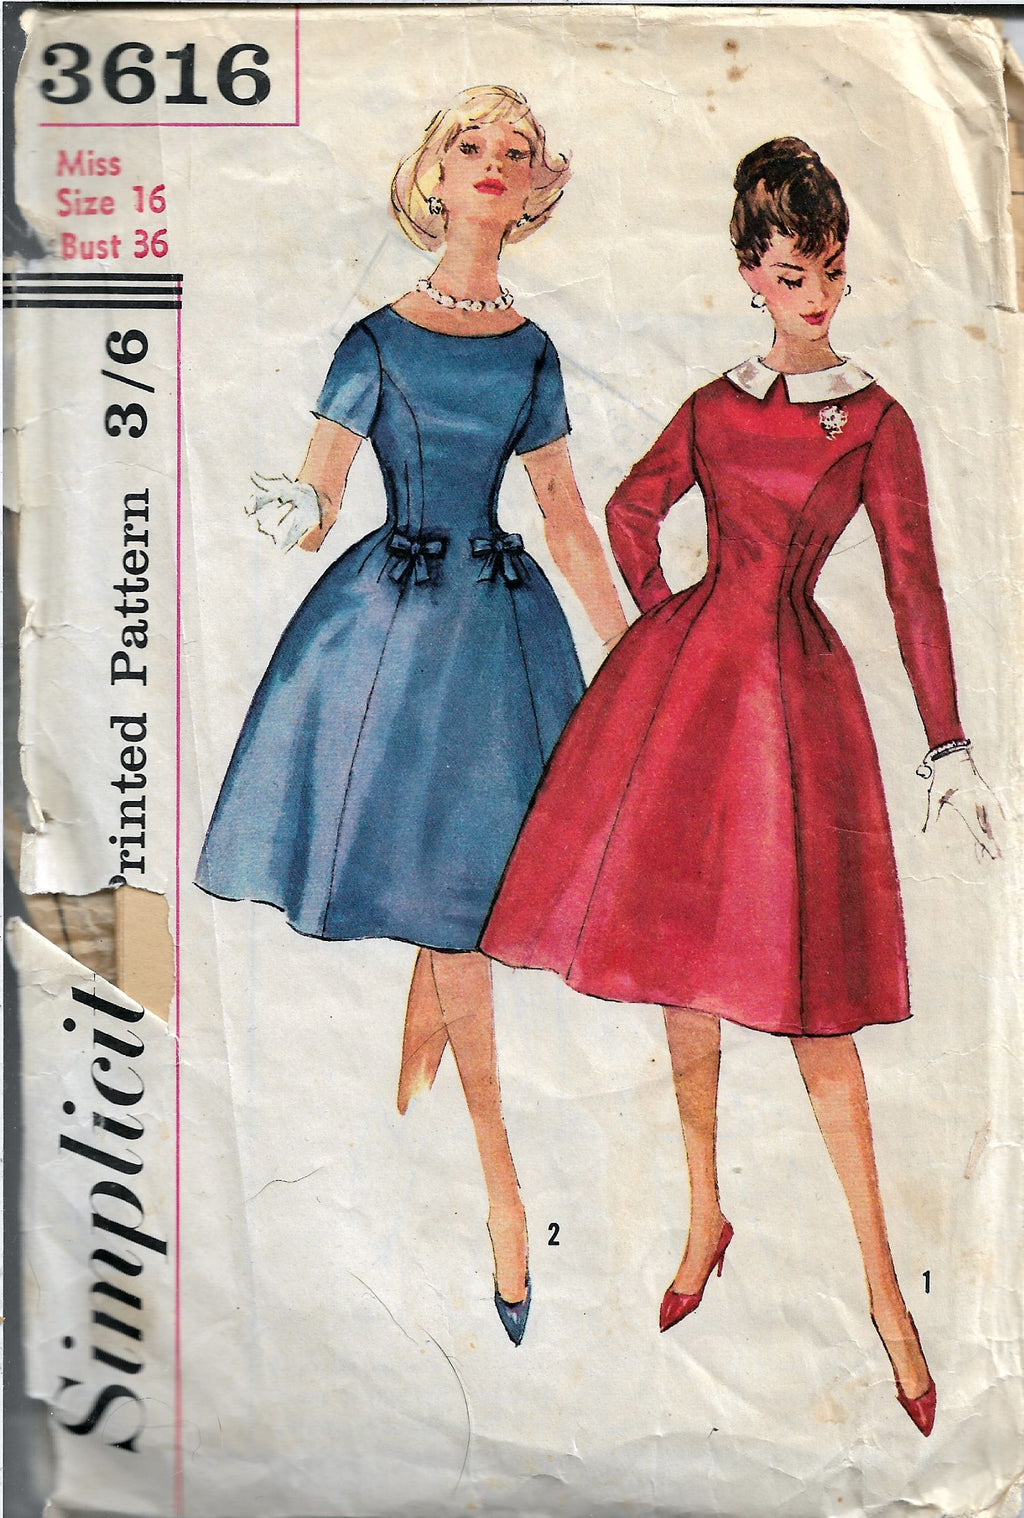 Simplicity 3616 Ladies Princess Dress Vintage Sewing Pattern 1960s - VintageStitching - Vintage Sewing Patterns